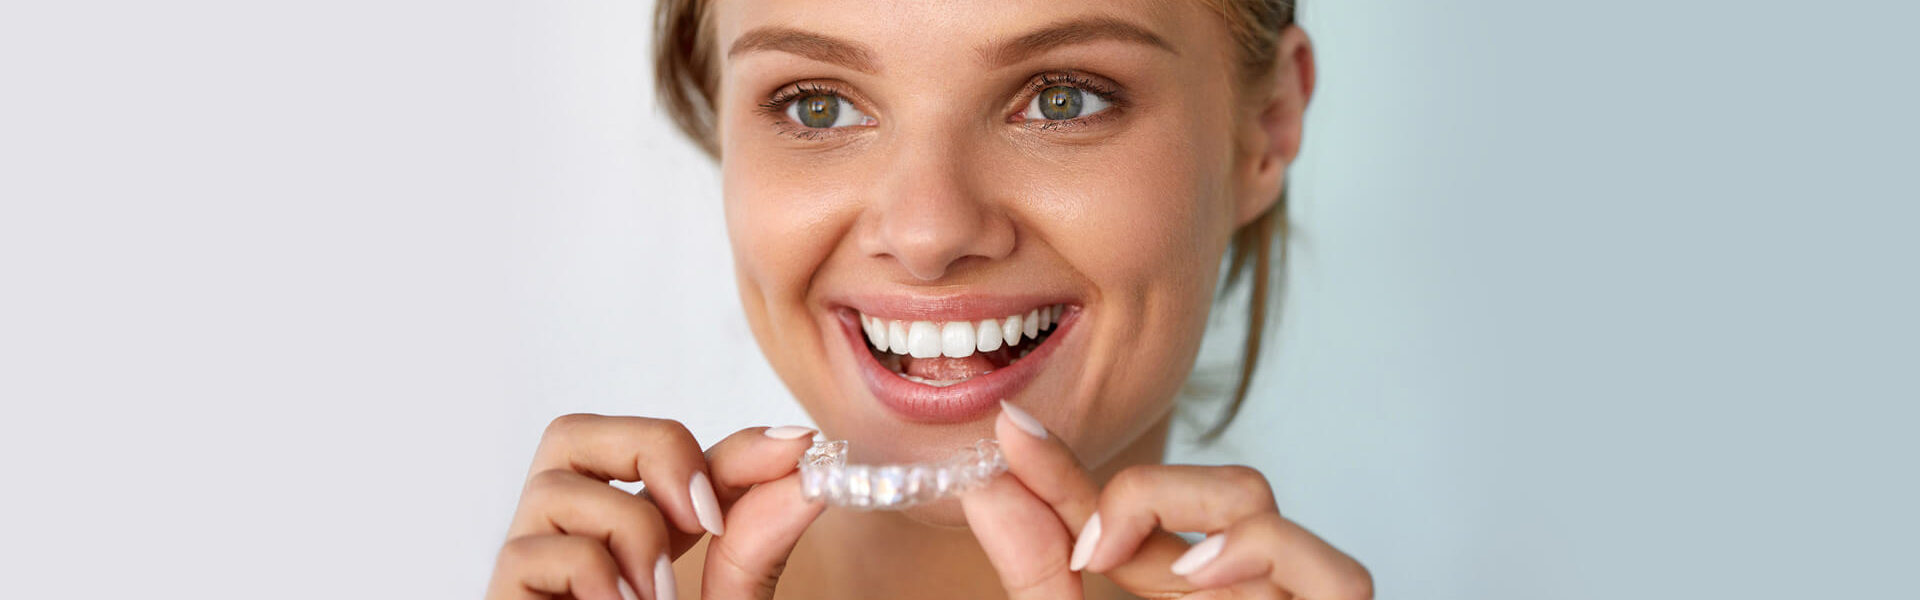 9 Reasons to Get Invisalign That Have Nothing to Do With Looks